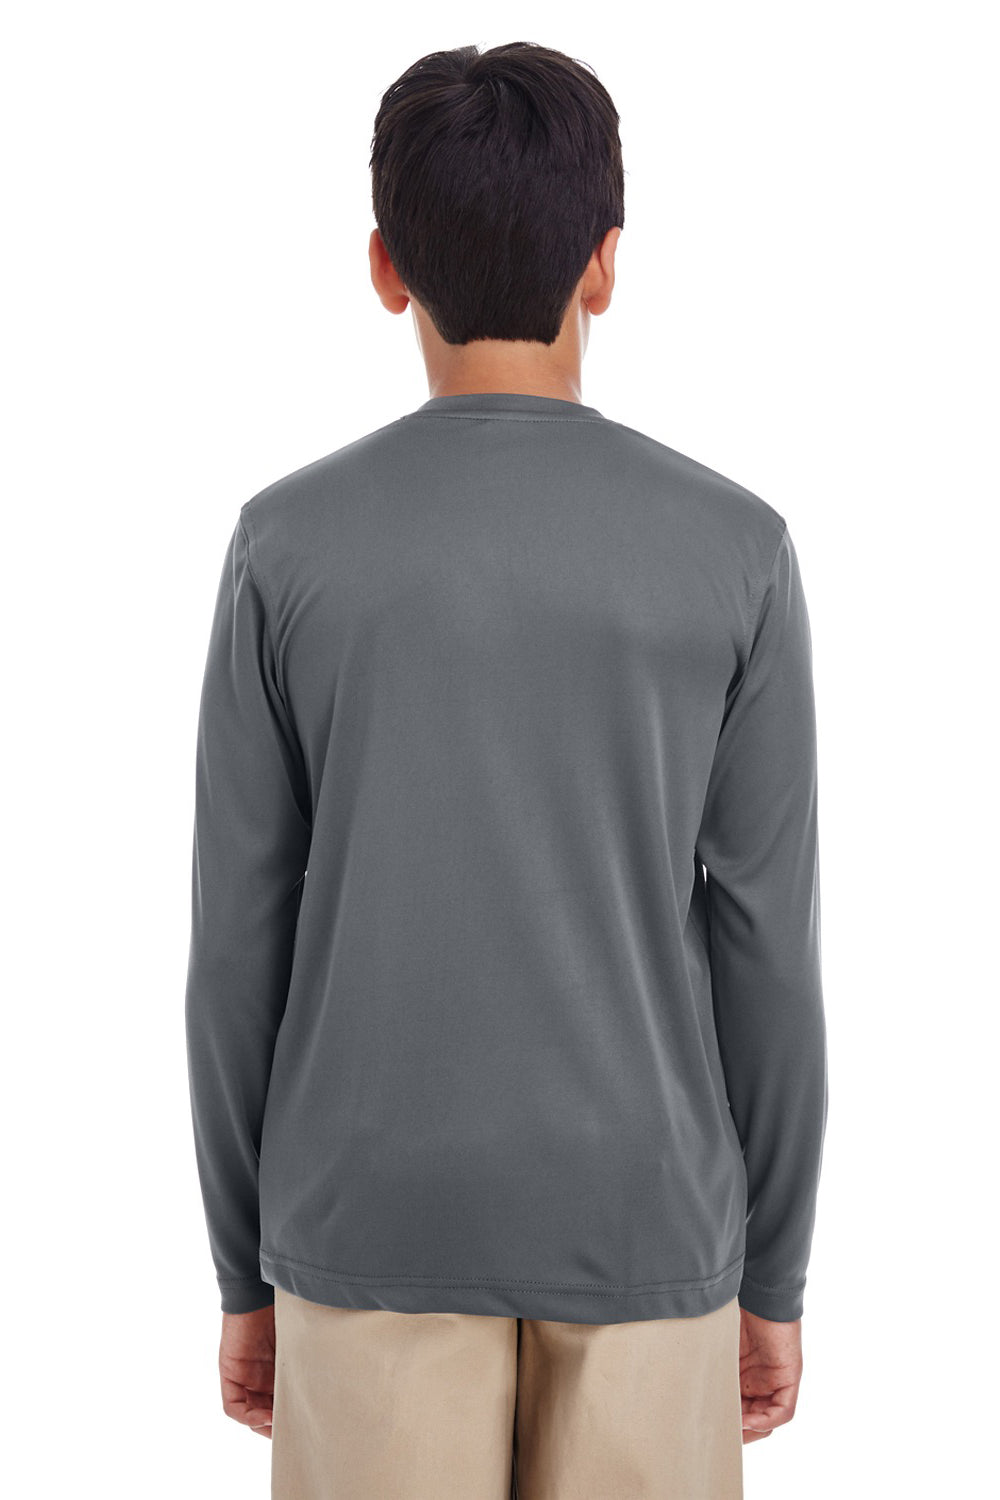 UltraClub 8622Y Youth Cool & Dry Performance Moisture Wicking Long Sleeve Crewneck T-Shirt Charcoal Grey Back